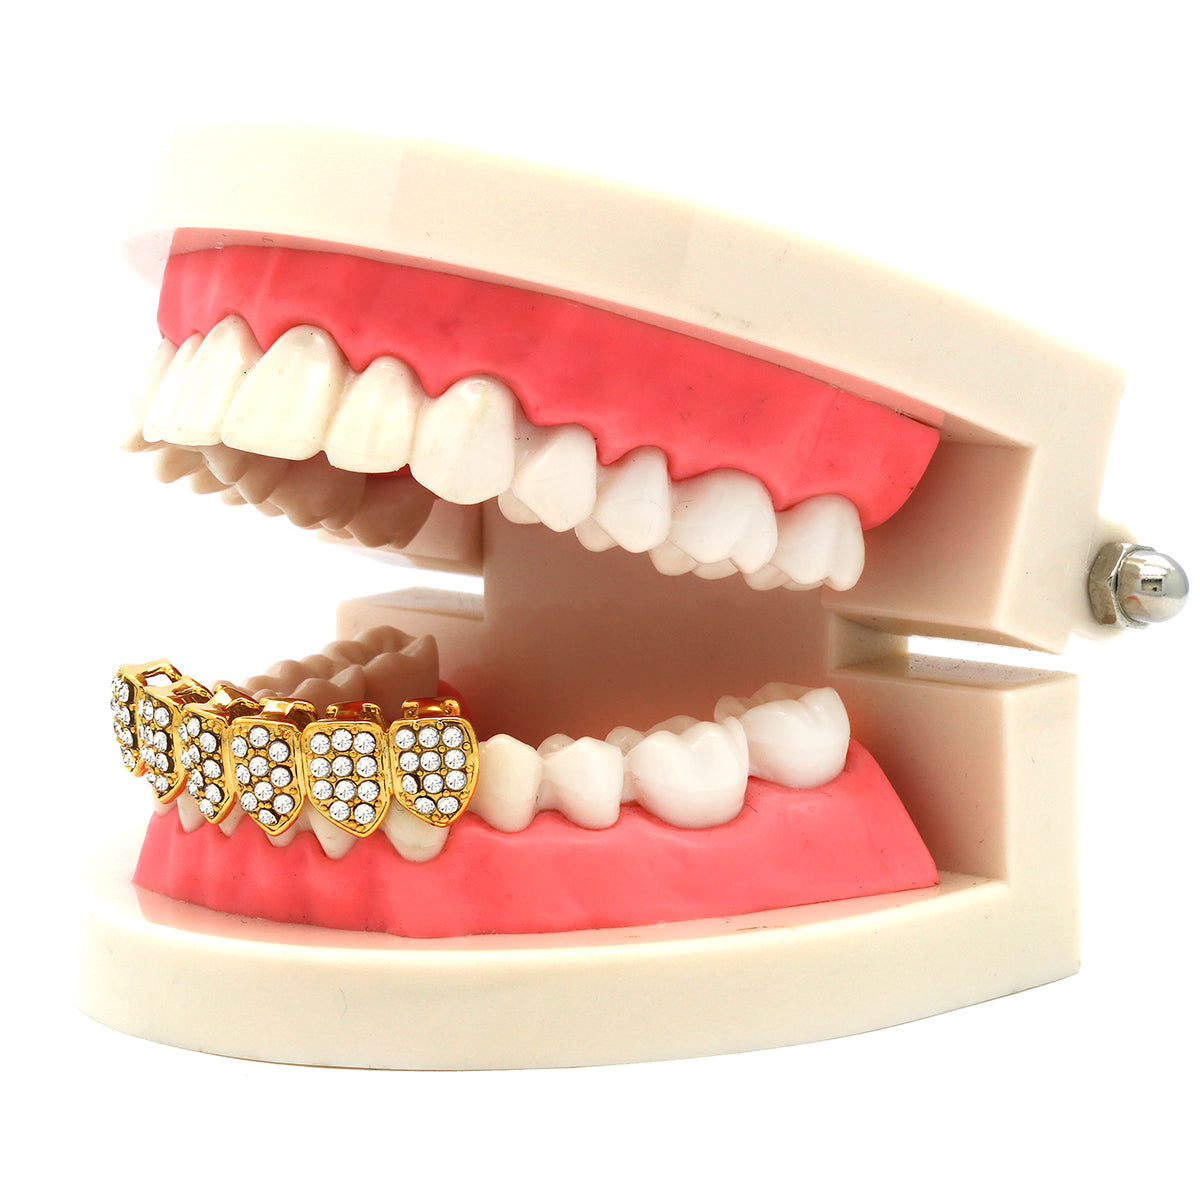 GOLD BOTTOM GRILLZ FULLY ICE OUT